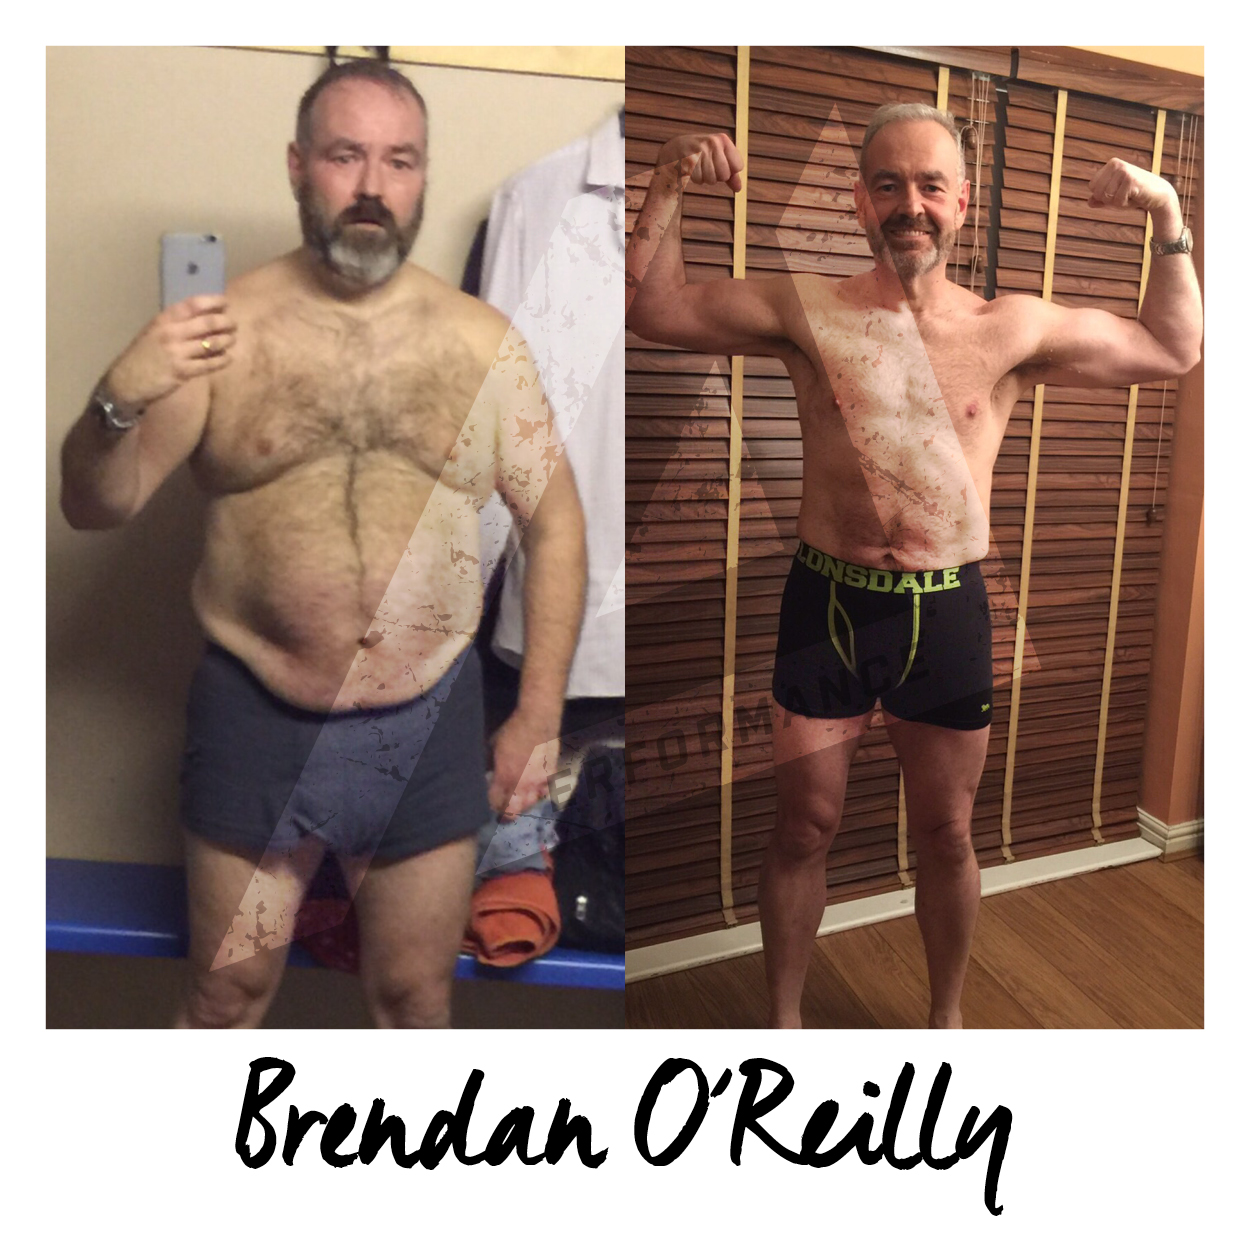 Brendan and I have been working together since January 2015 and his story & transformation is incredible. I hope someone, somewhere reads this and is motivated by Brendan's journey and it triggers them to start their own...